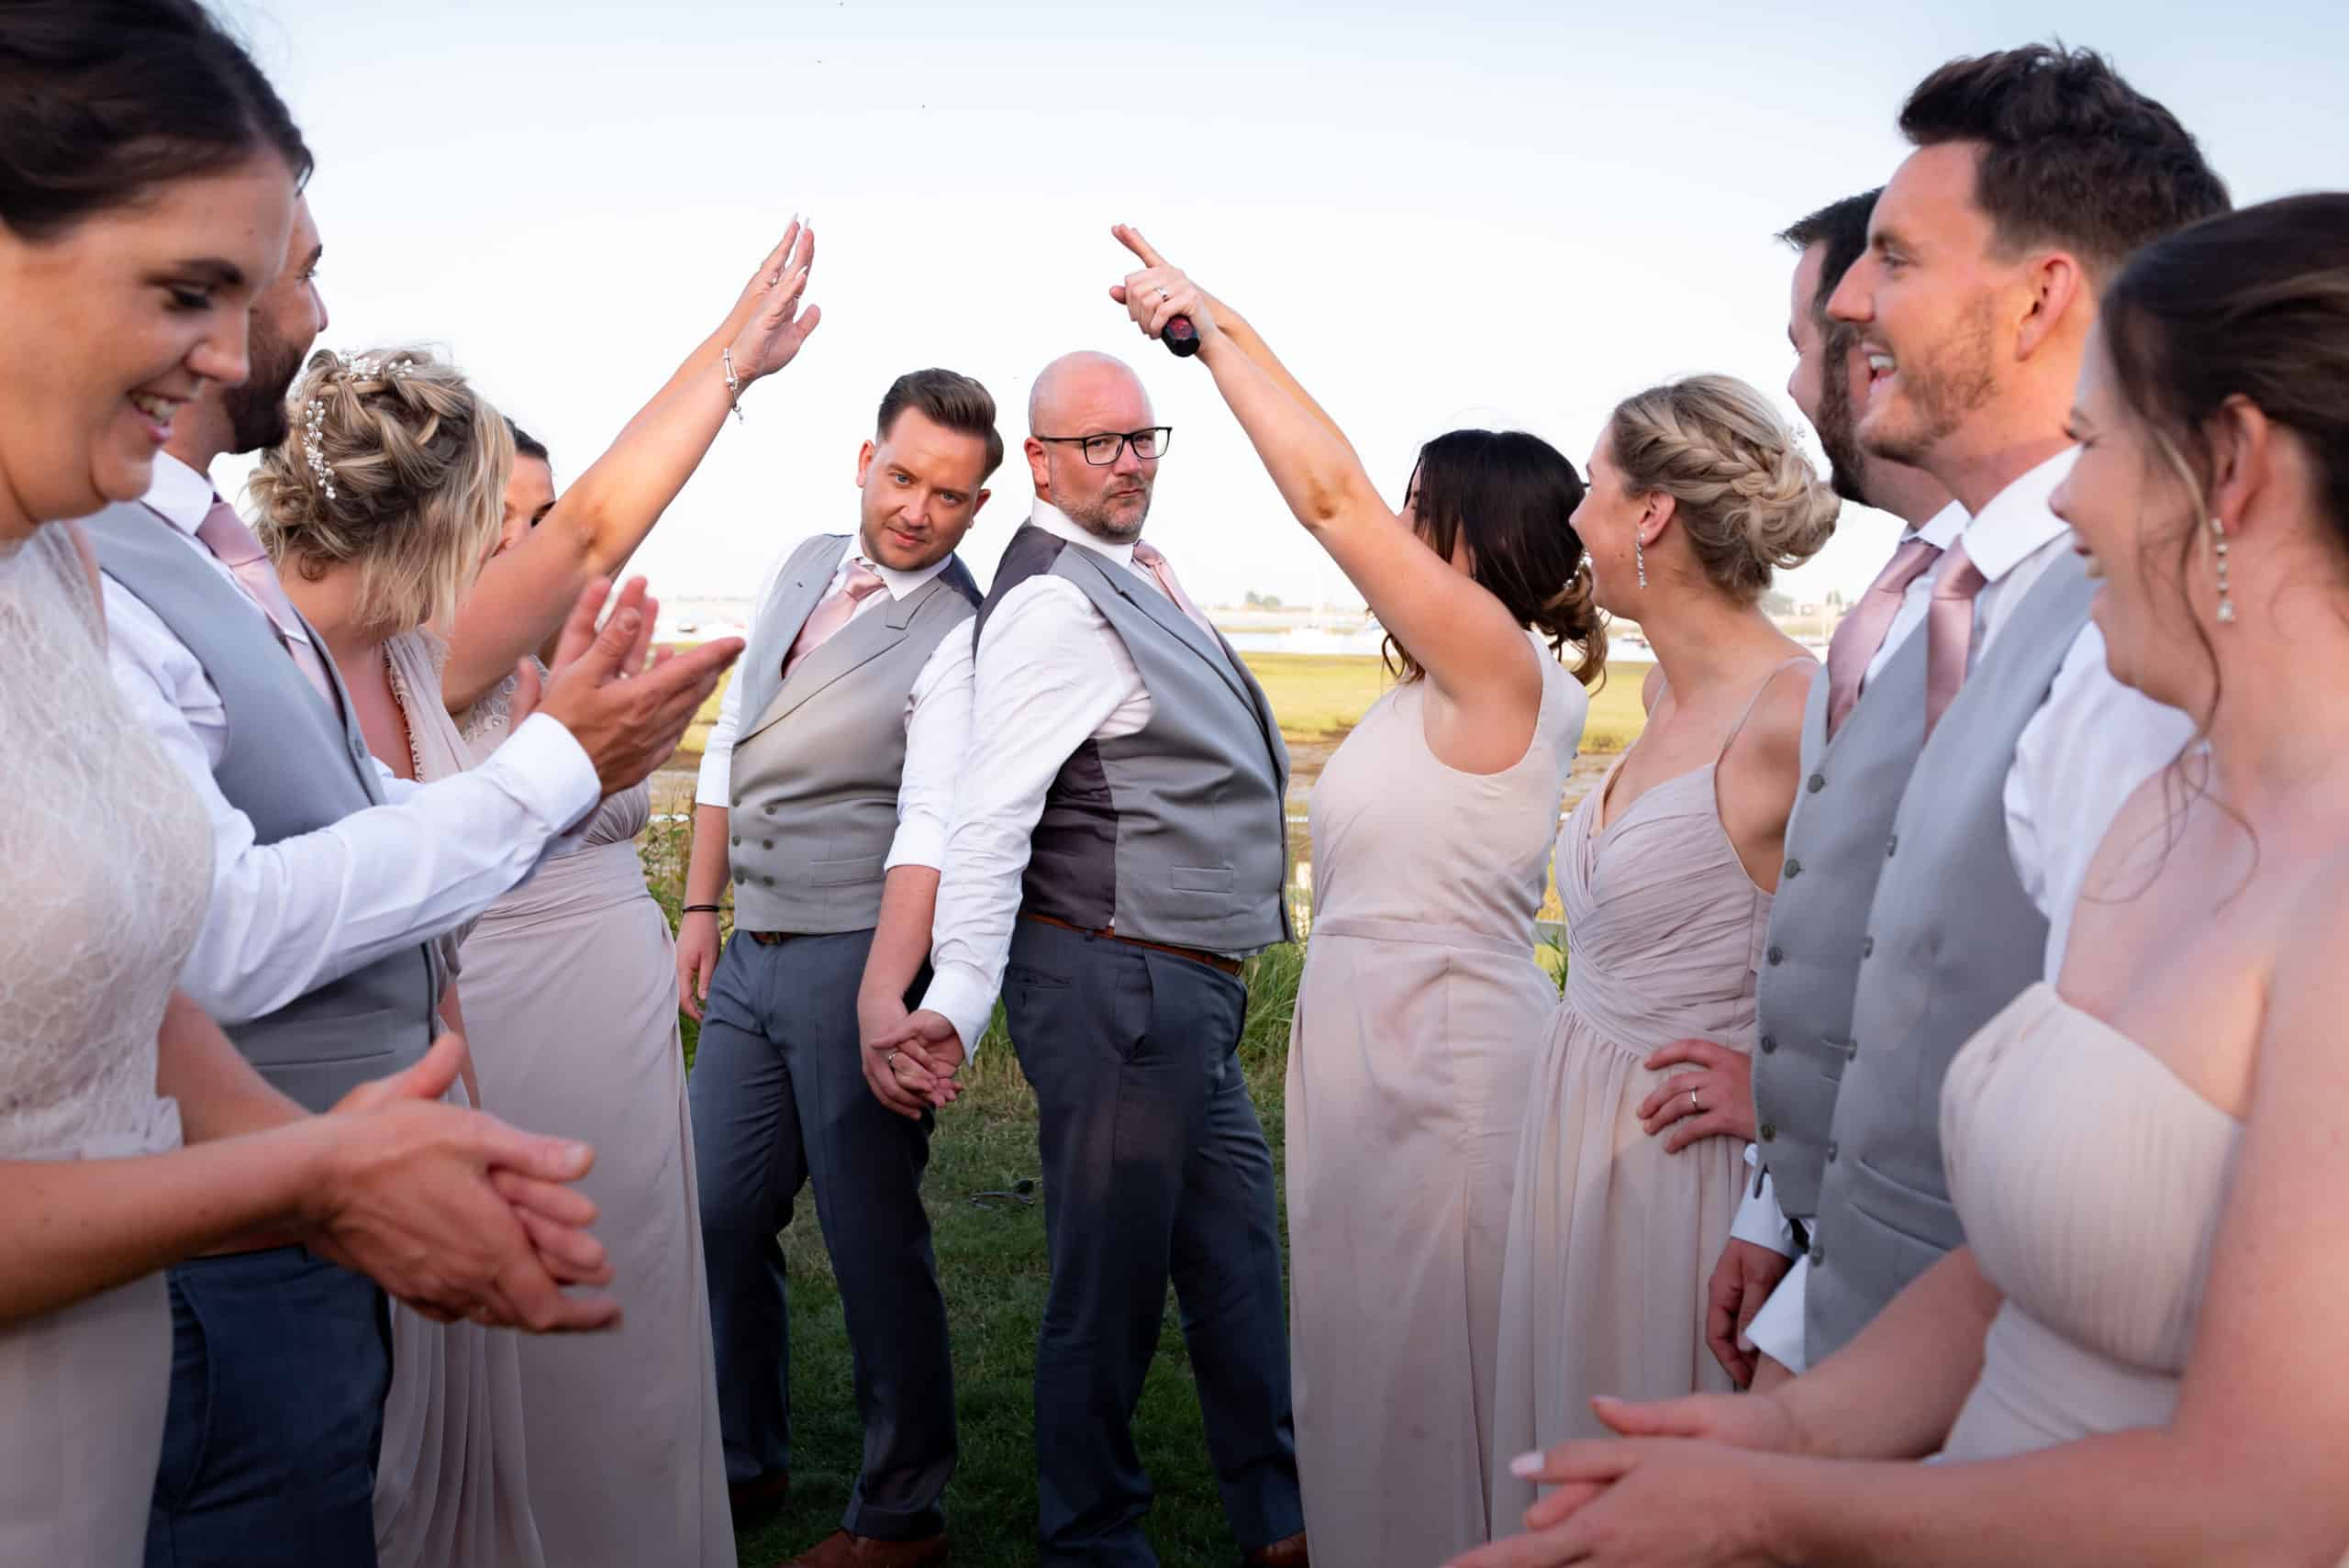 Gay couple at their wedding taking photos with their party